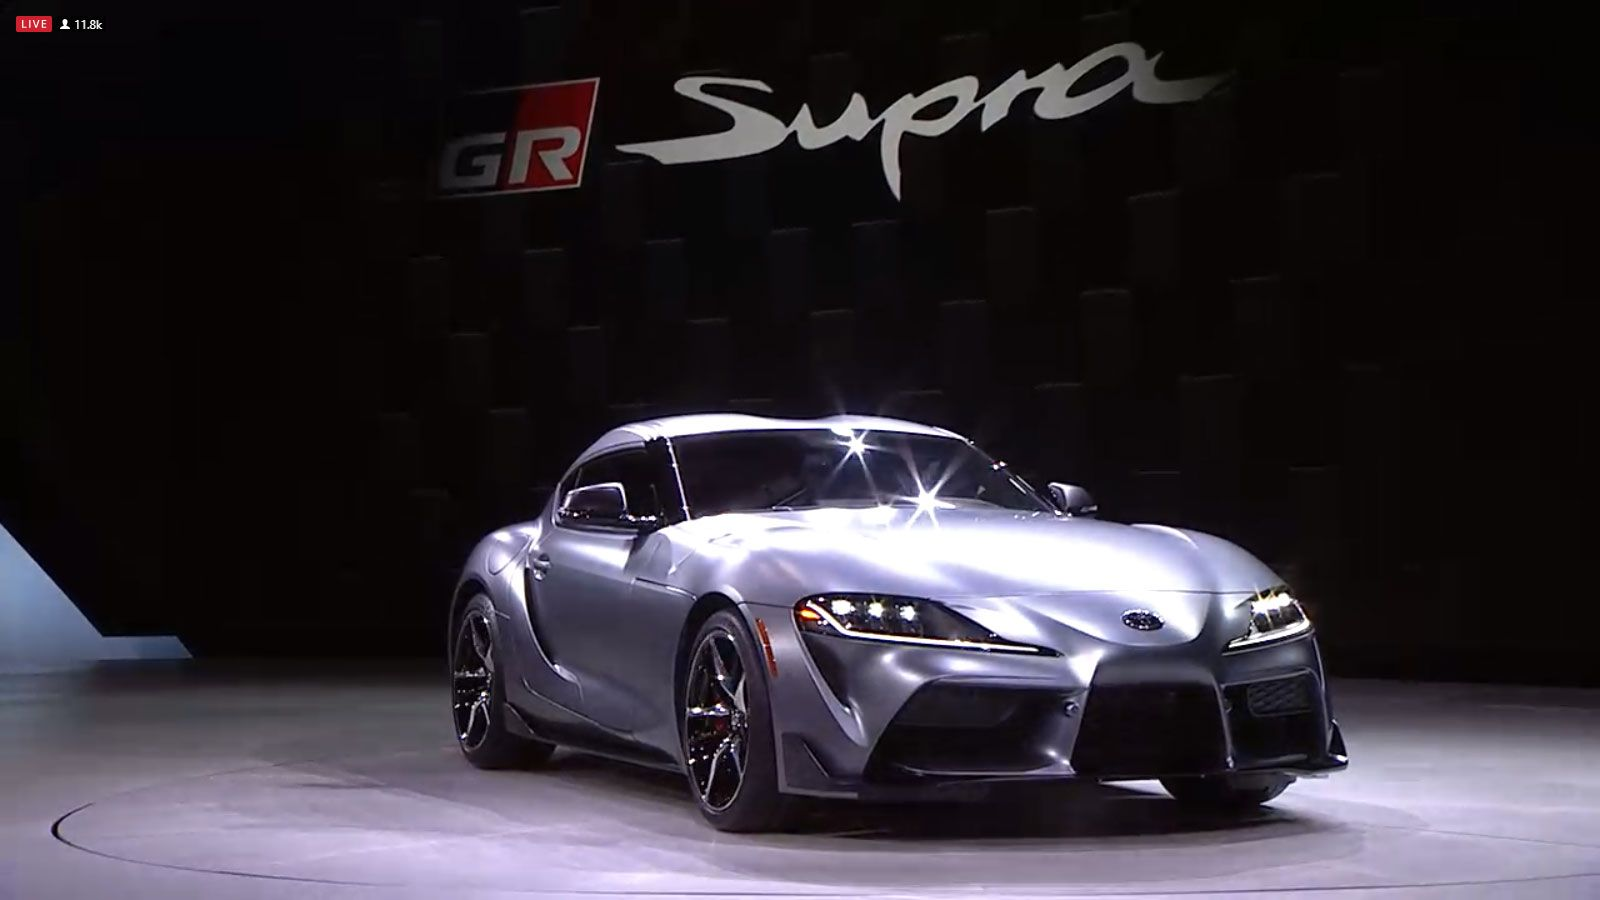 2020 Toyota Supra Launch Car Wallpaper 4k Toyota Supra Toyota Sports Cars Luxury